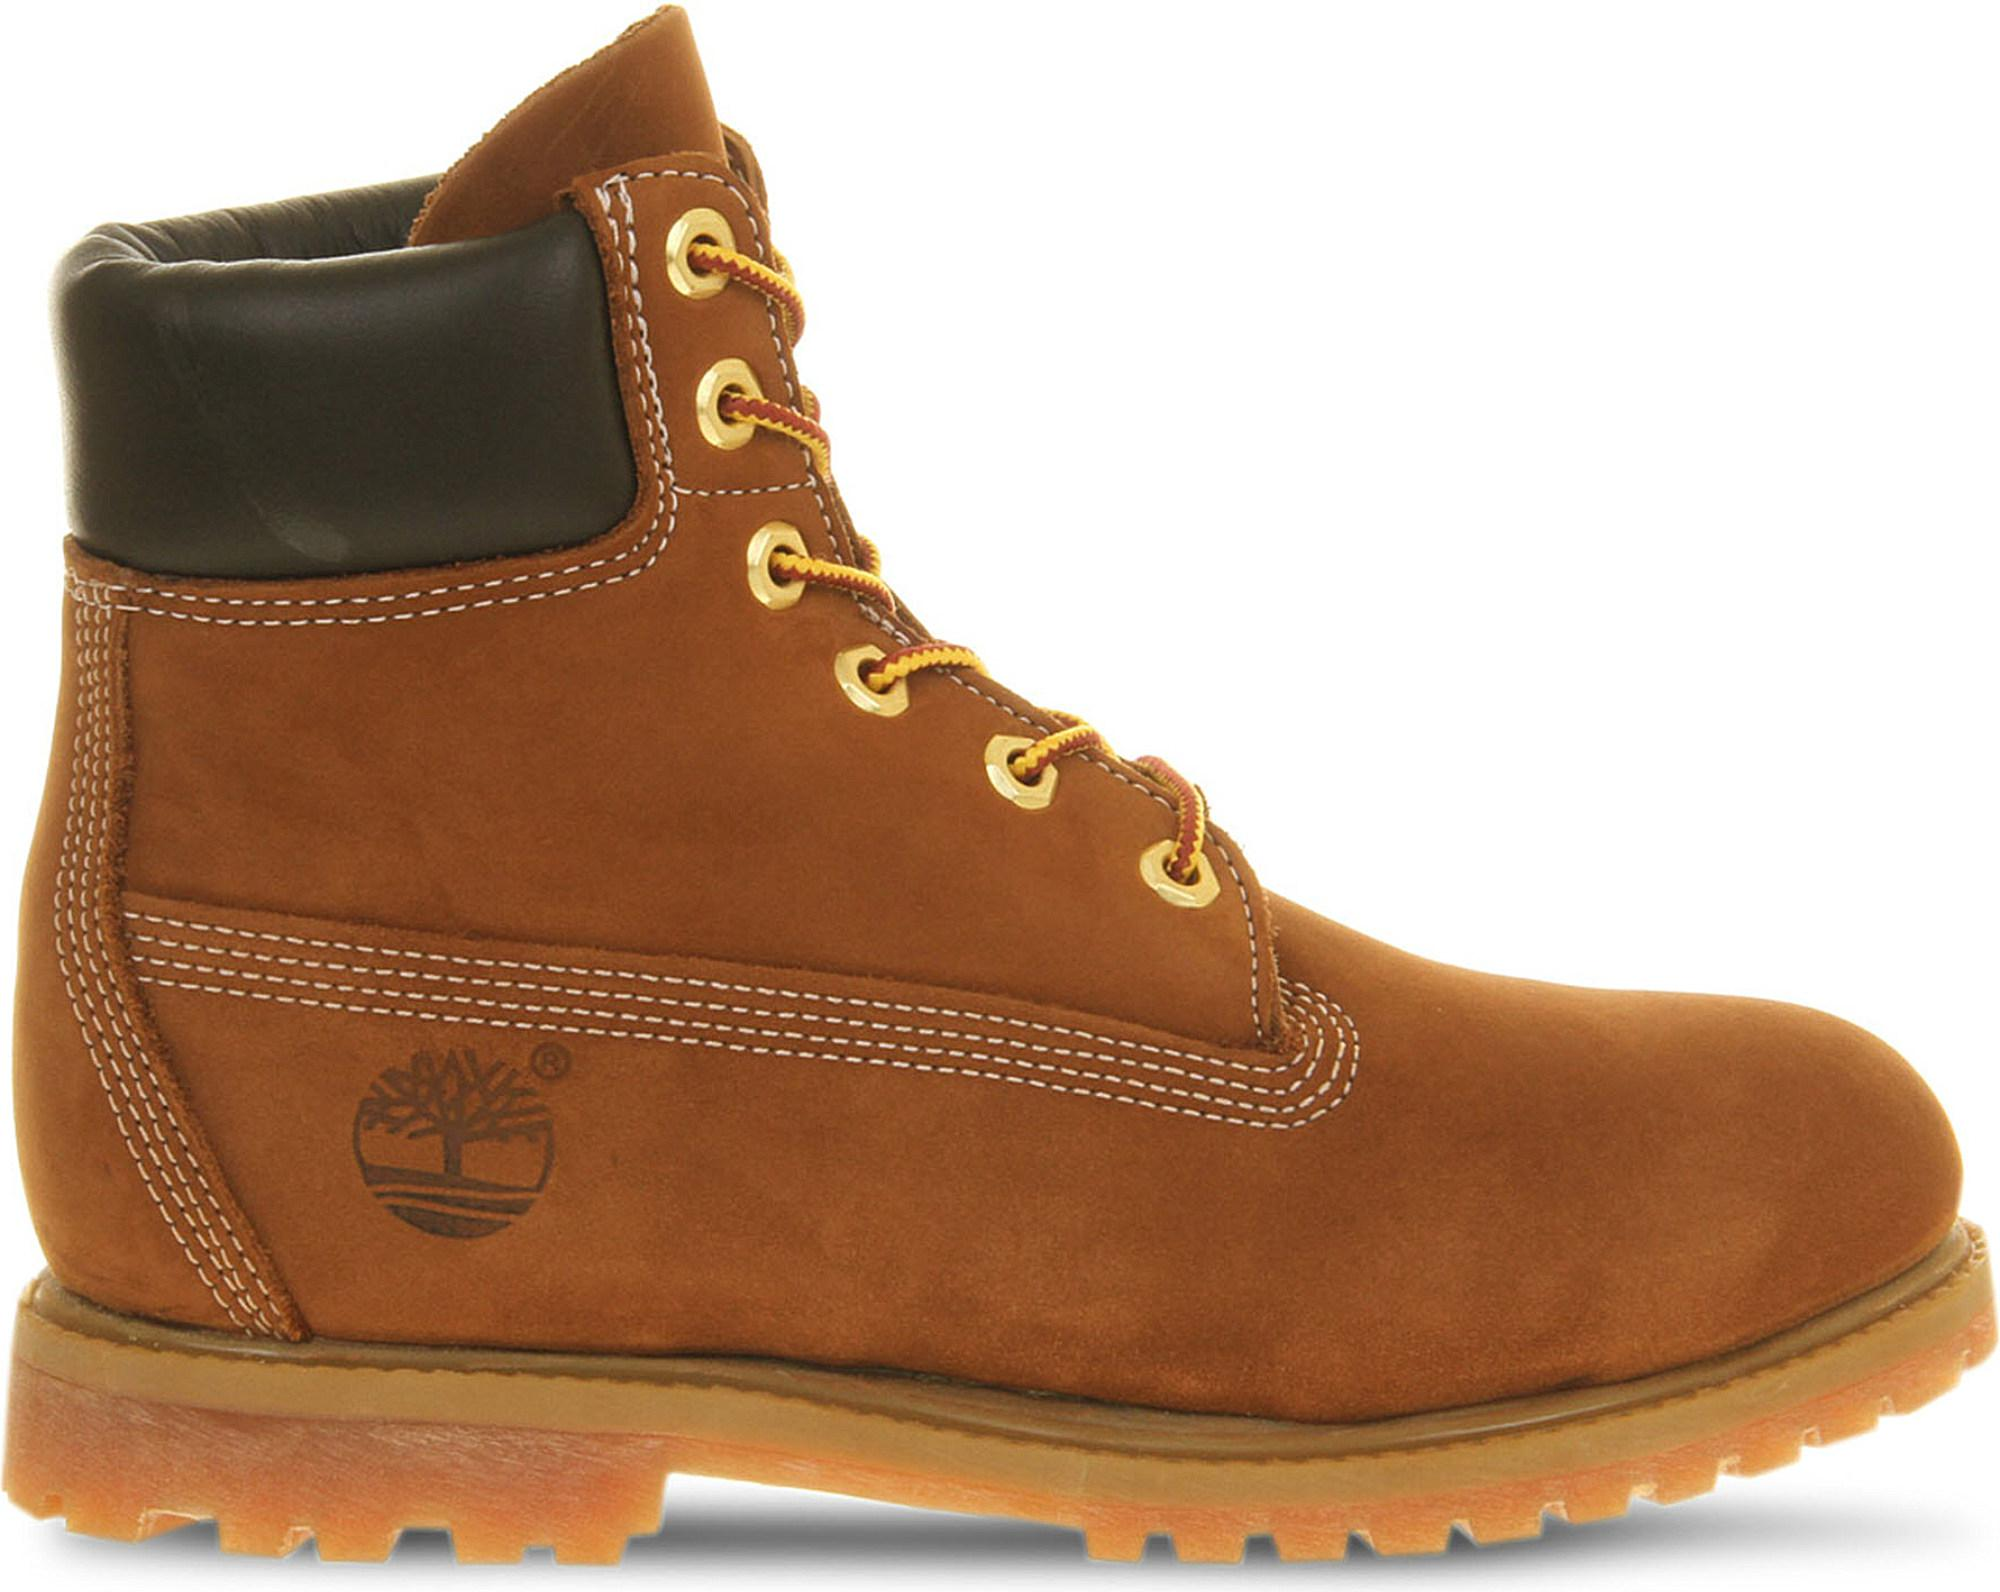 8850944061b6 Lyst - Timberland Earthkeepers 6-inch Premium Boots in Brown